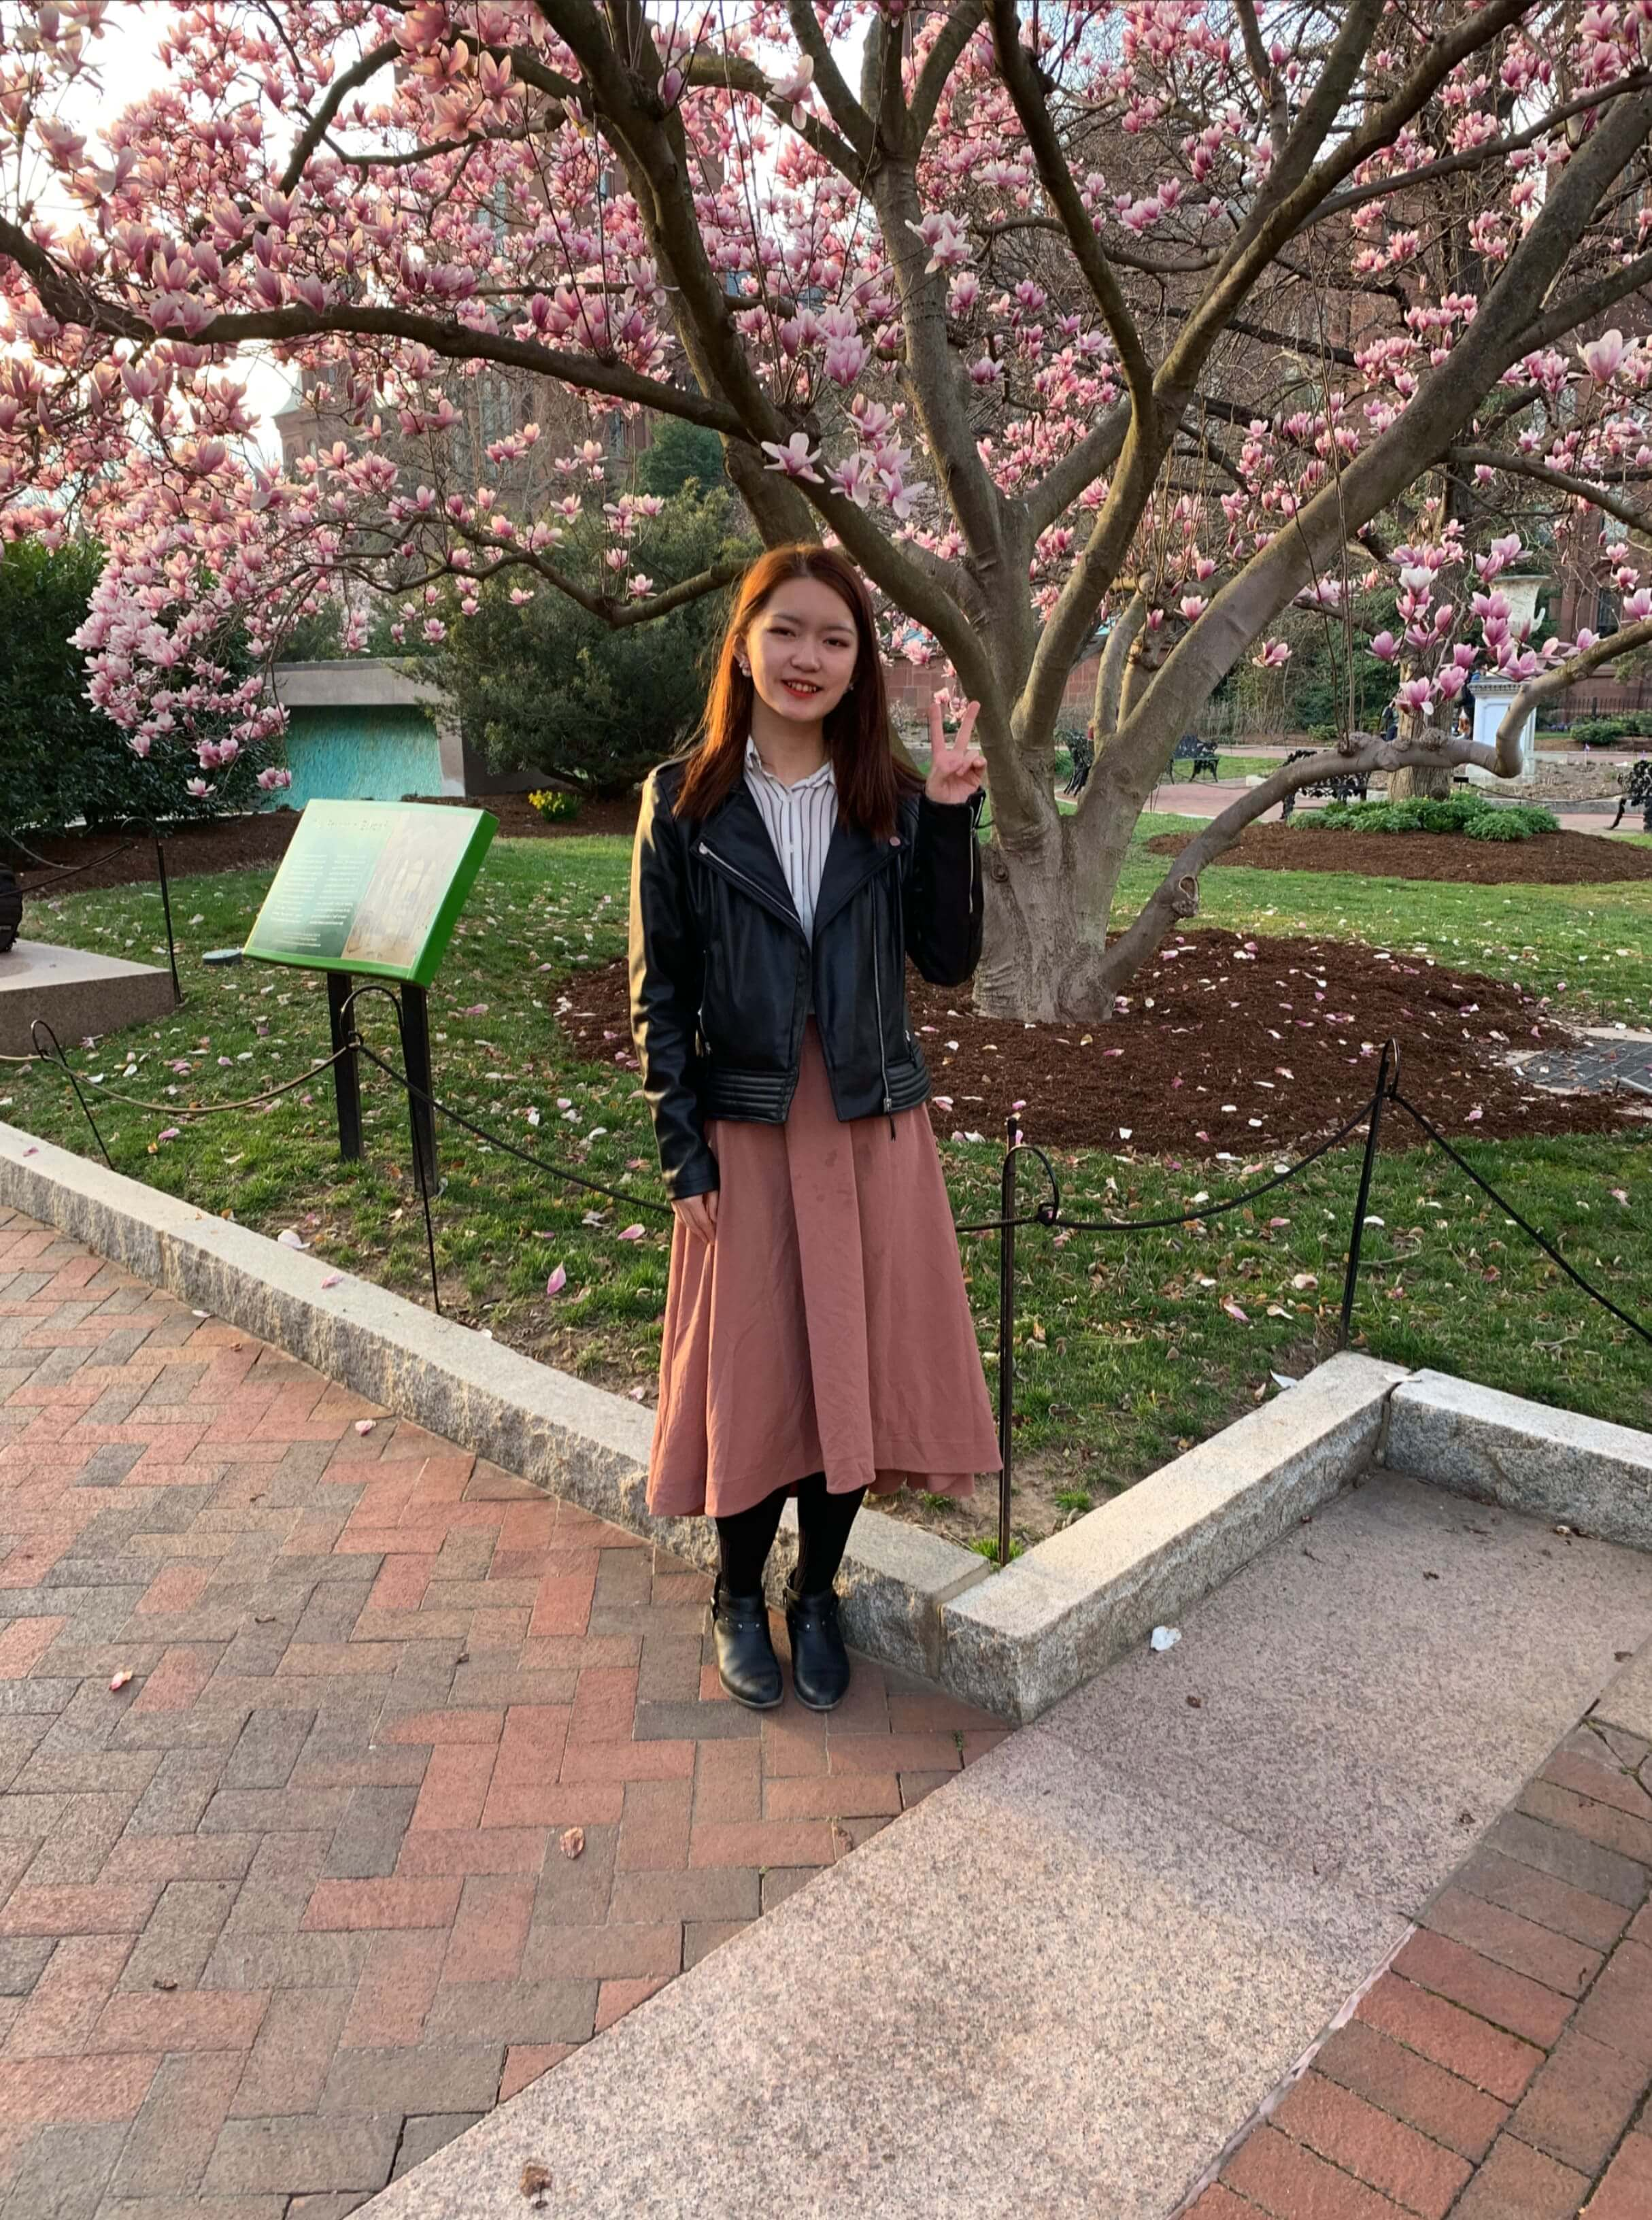 student in front of cherry blossom tree